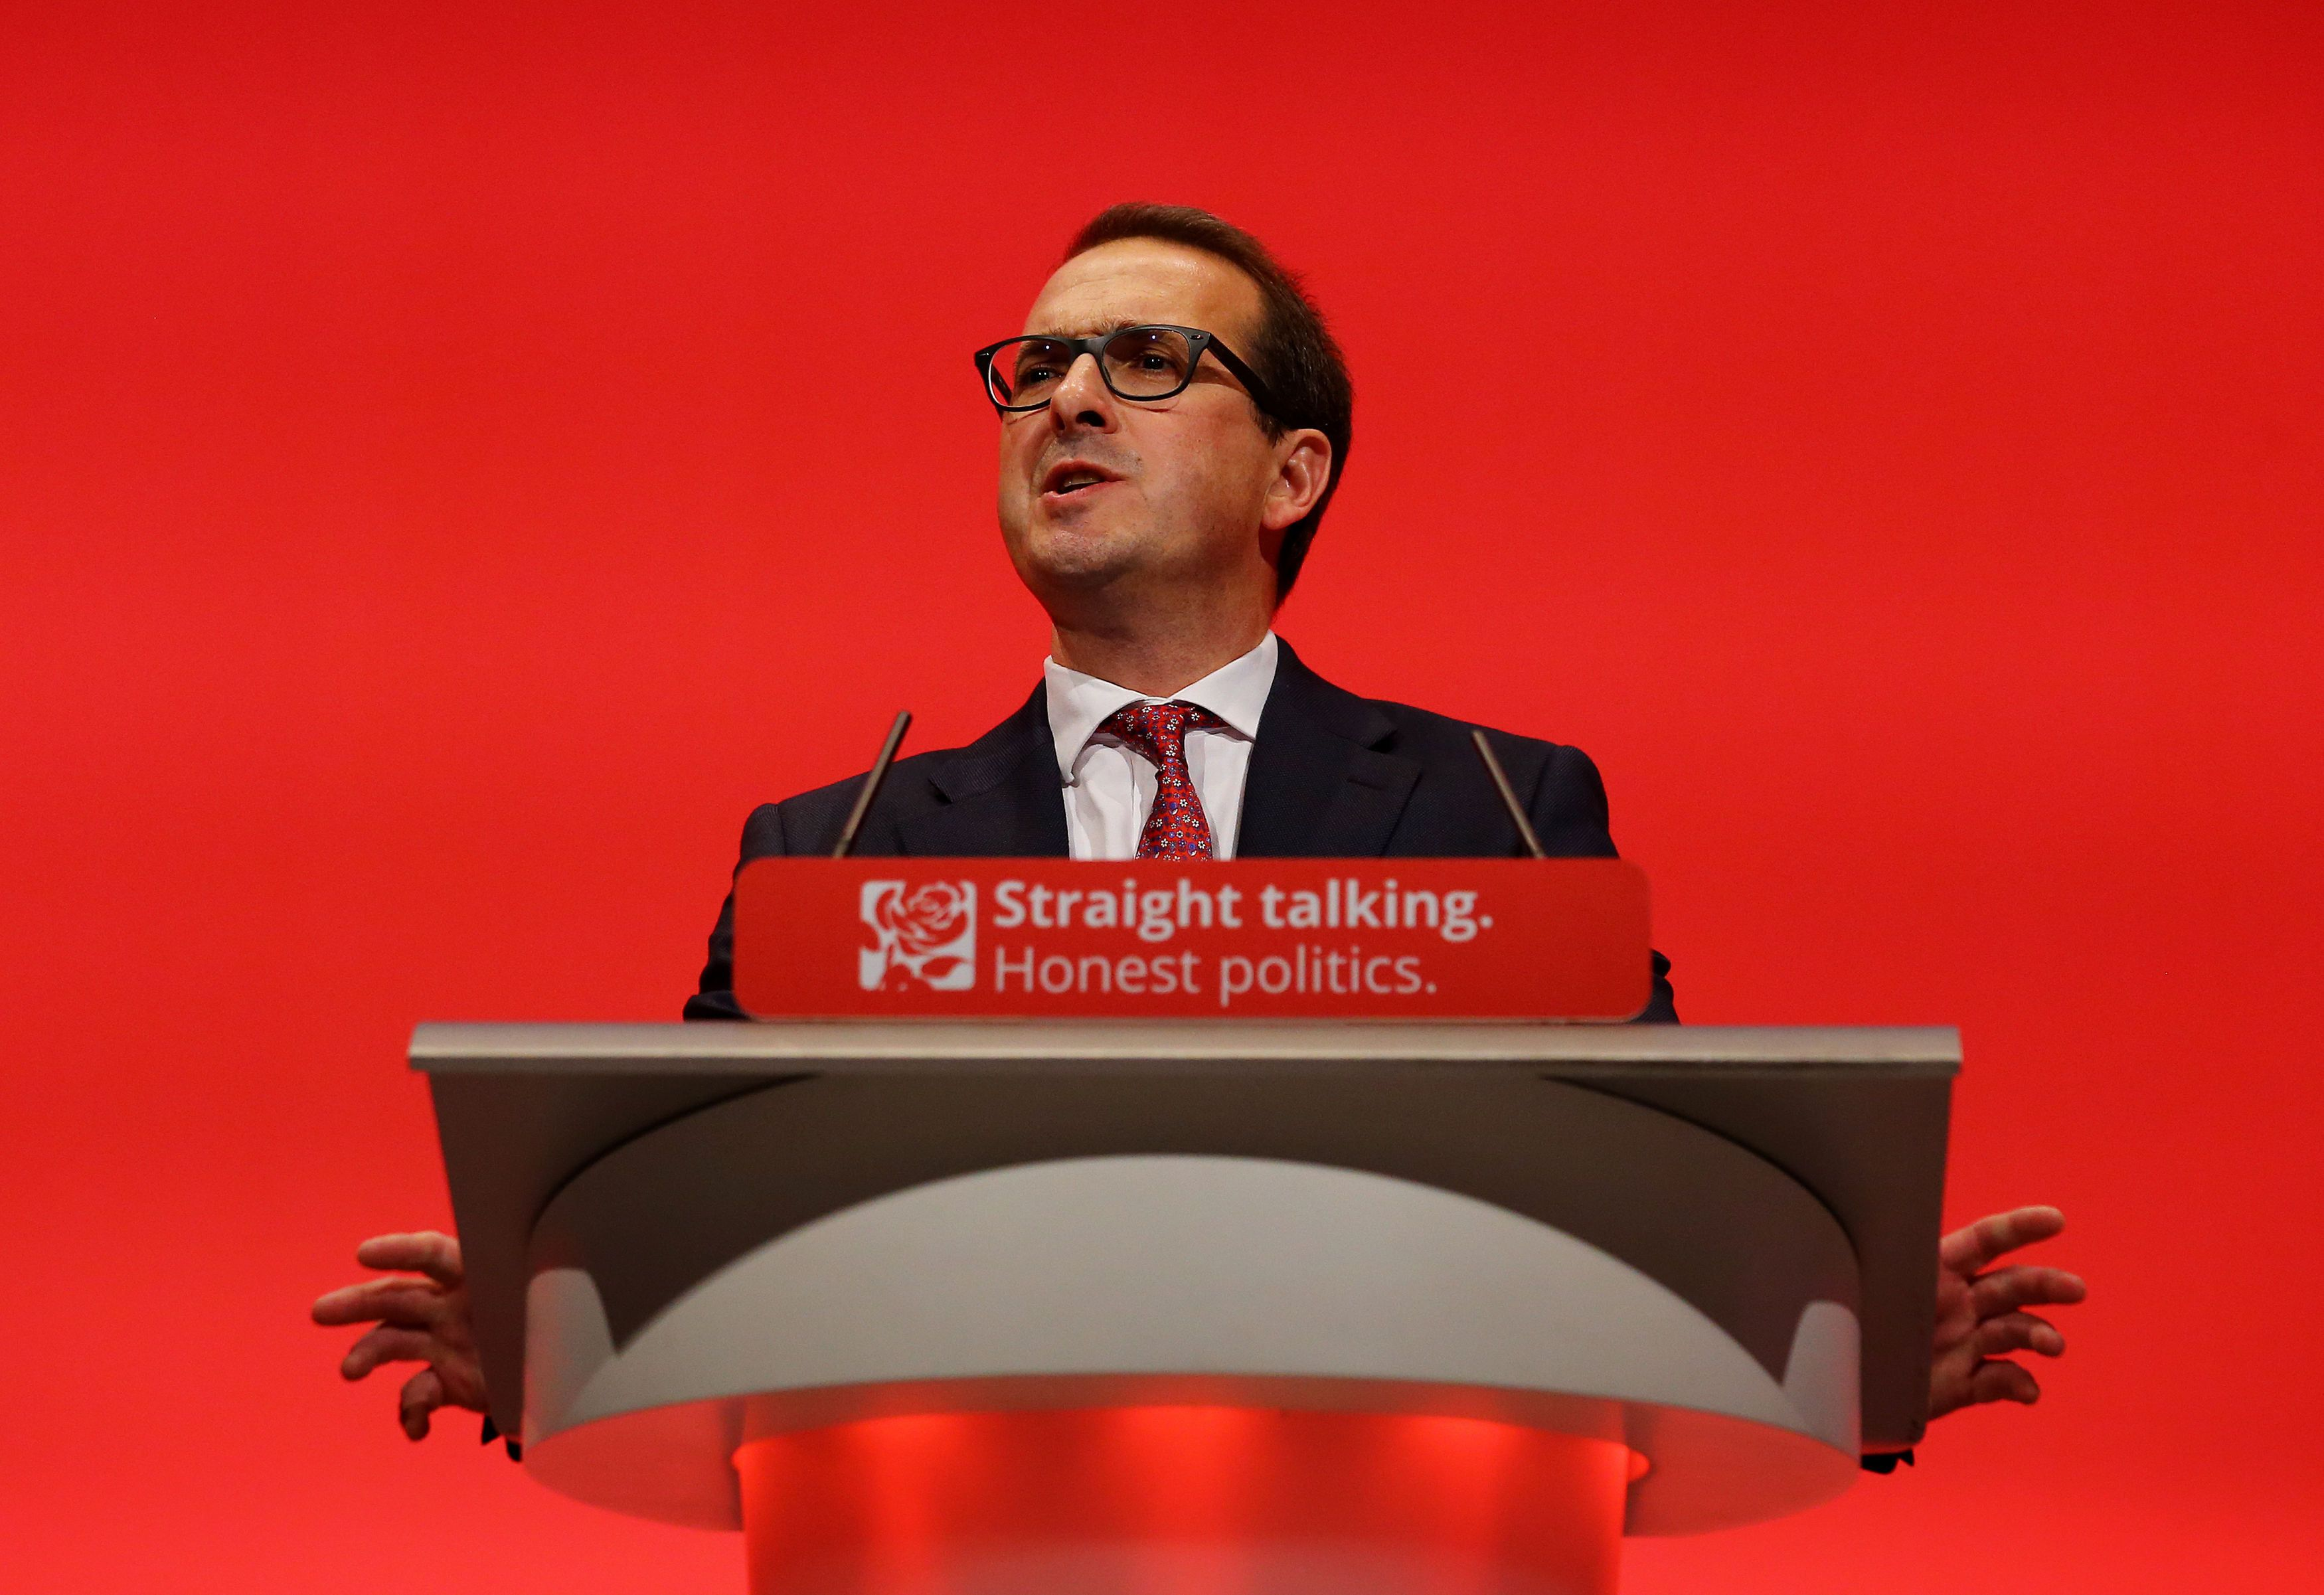 Owen Smith claimed there had been a 'dramatic collapse of faith and confidence' in Jeremy